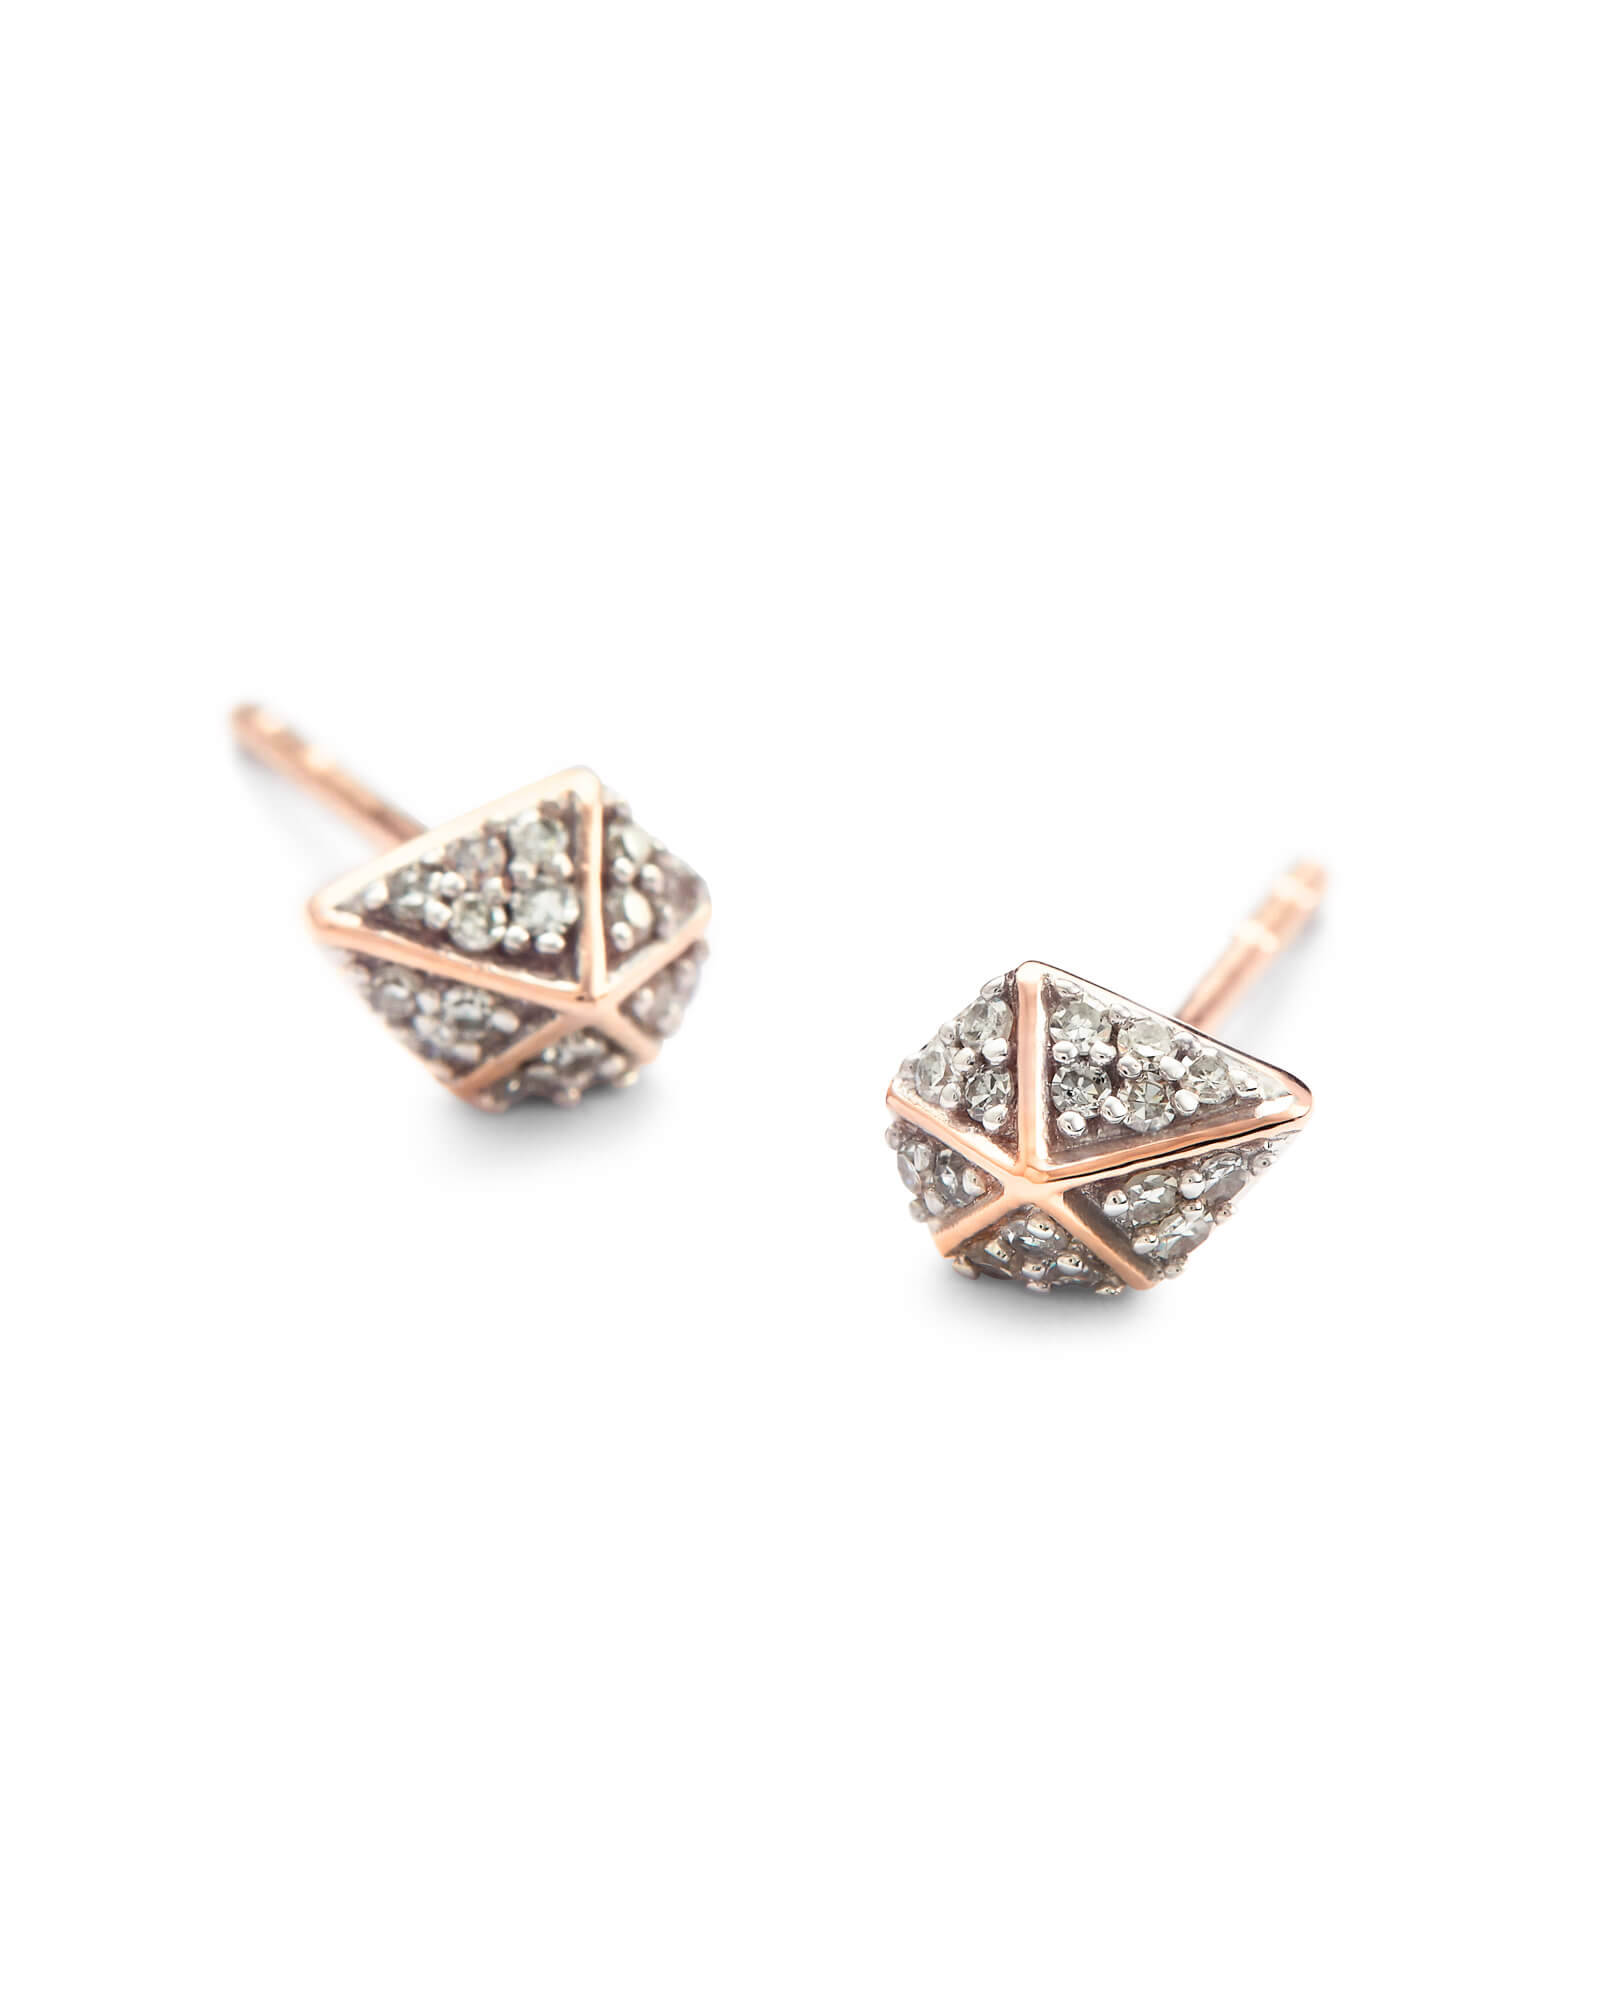 Manet Stud Earrings in White Diamond